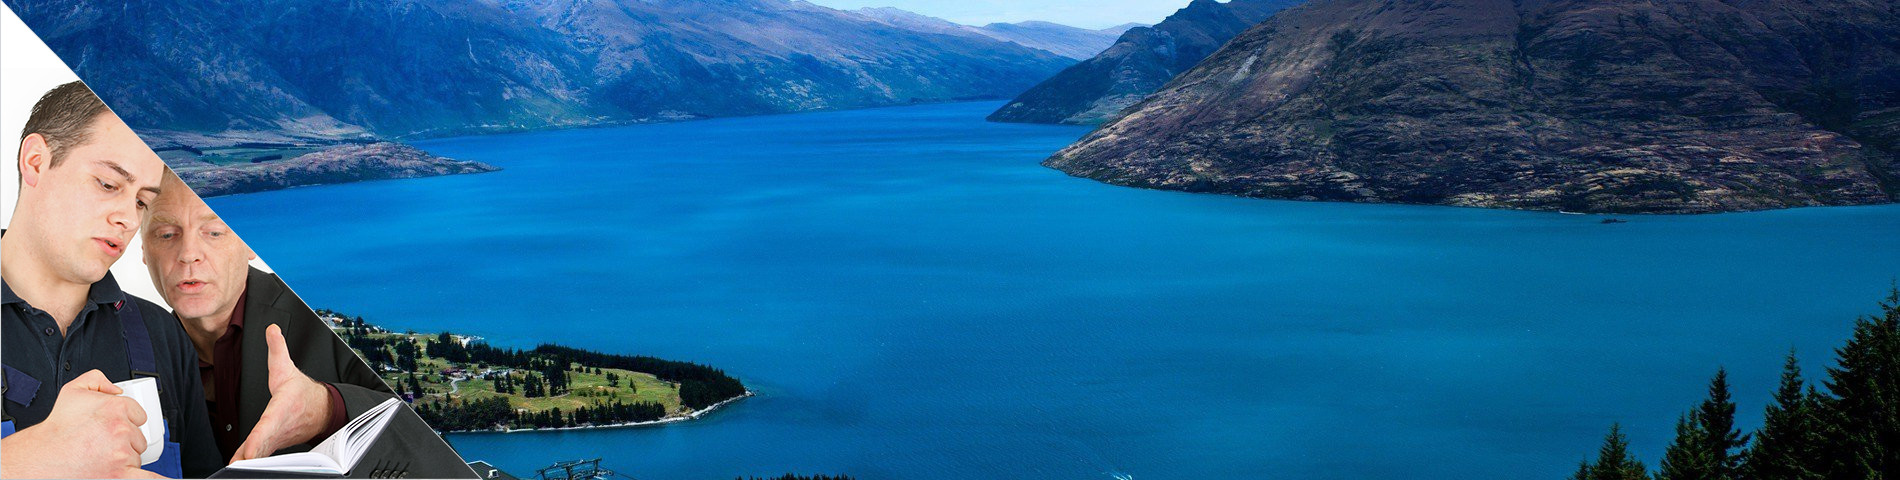 Queenstown - Clases Particulares